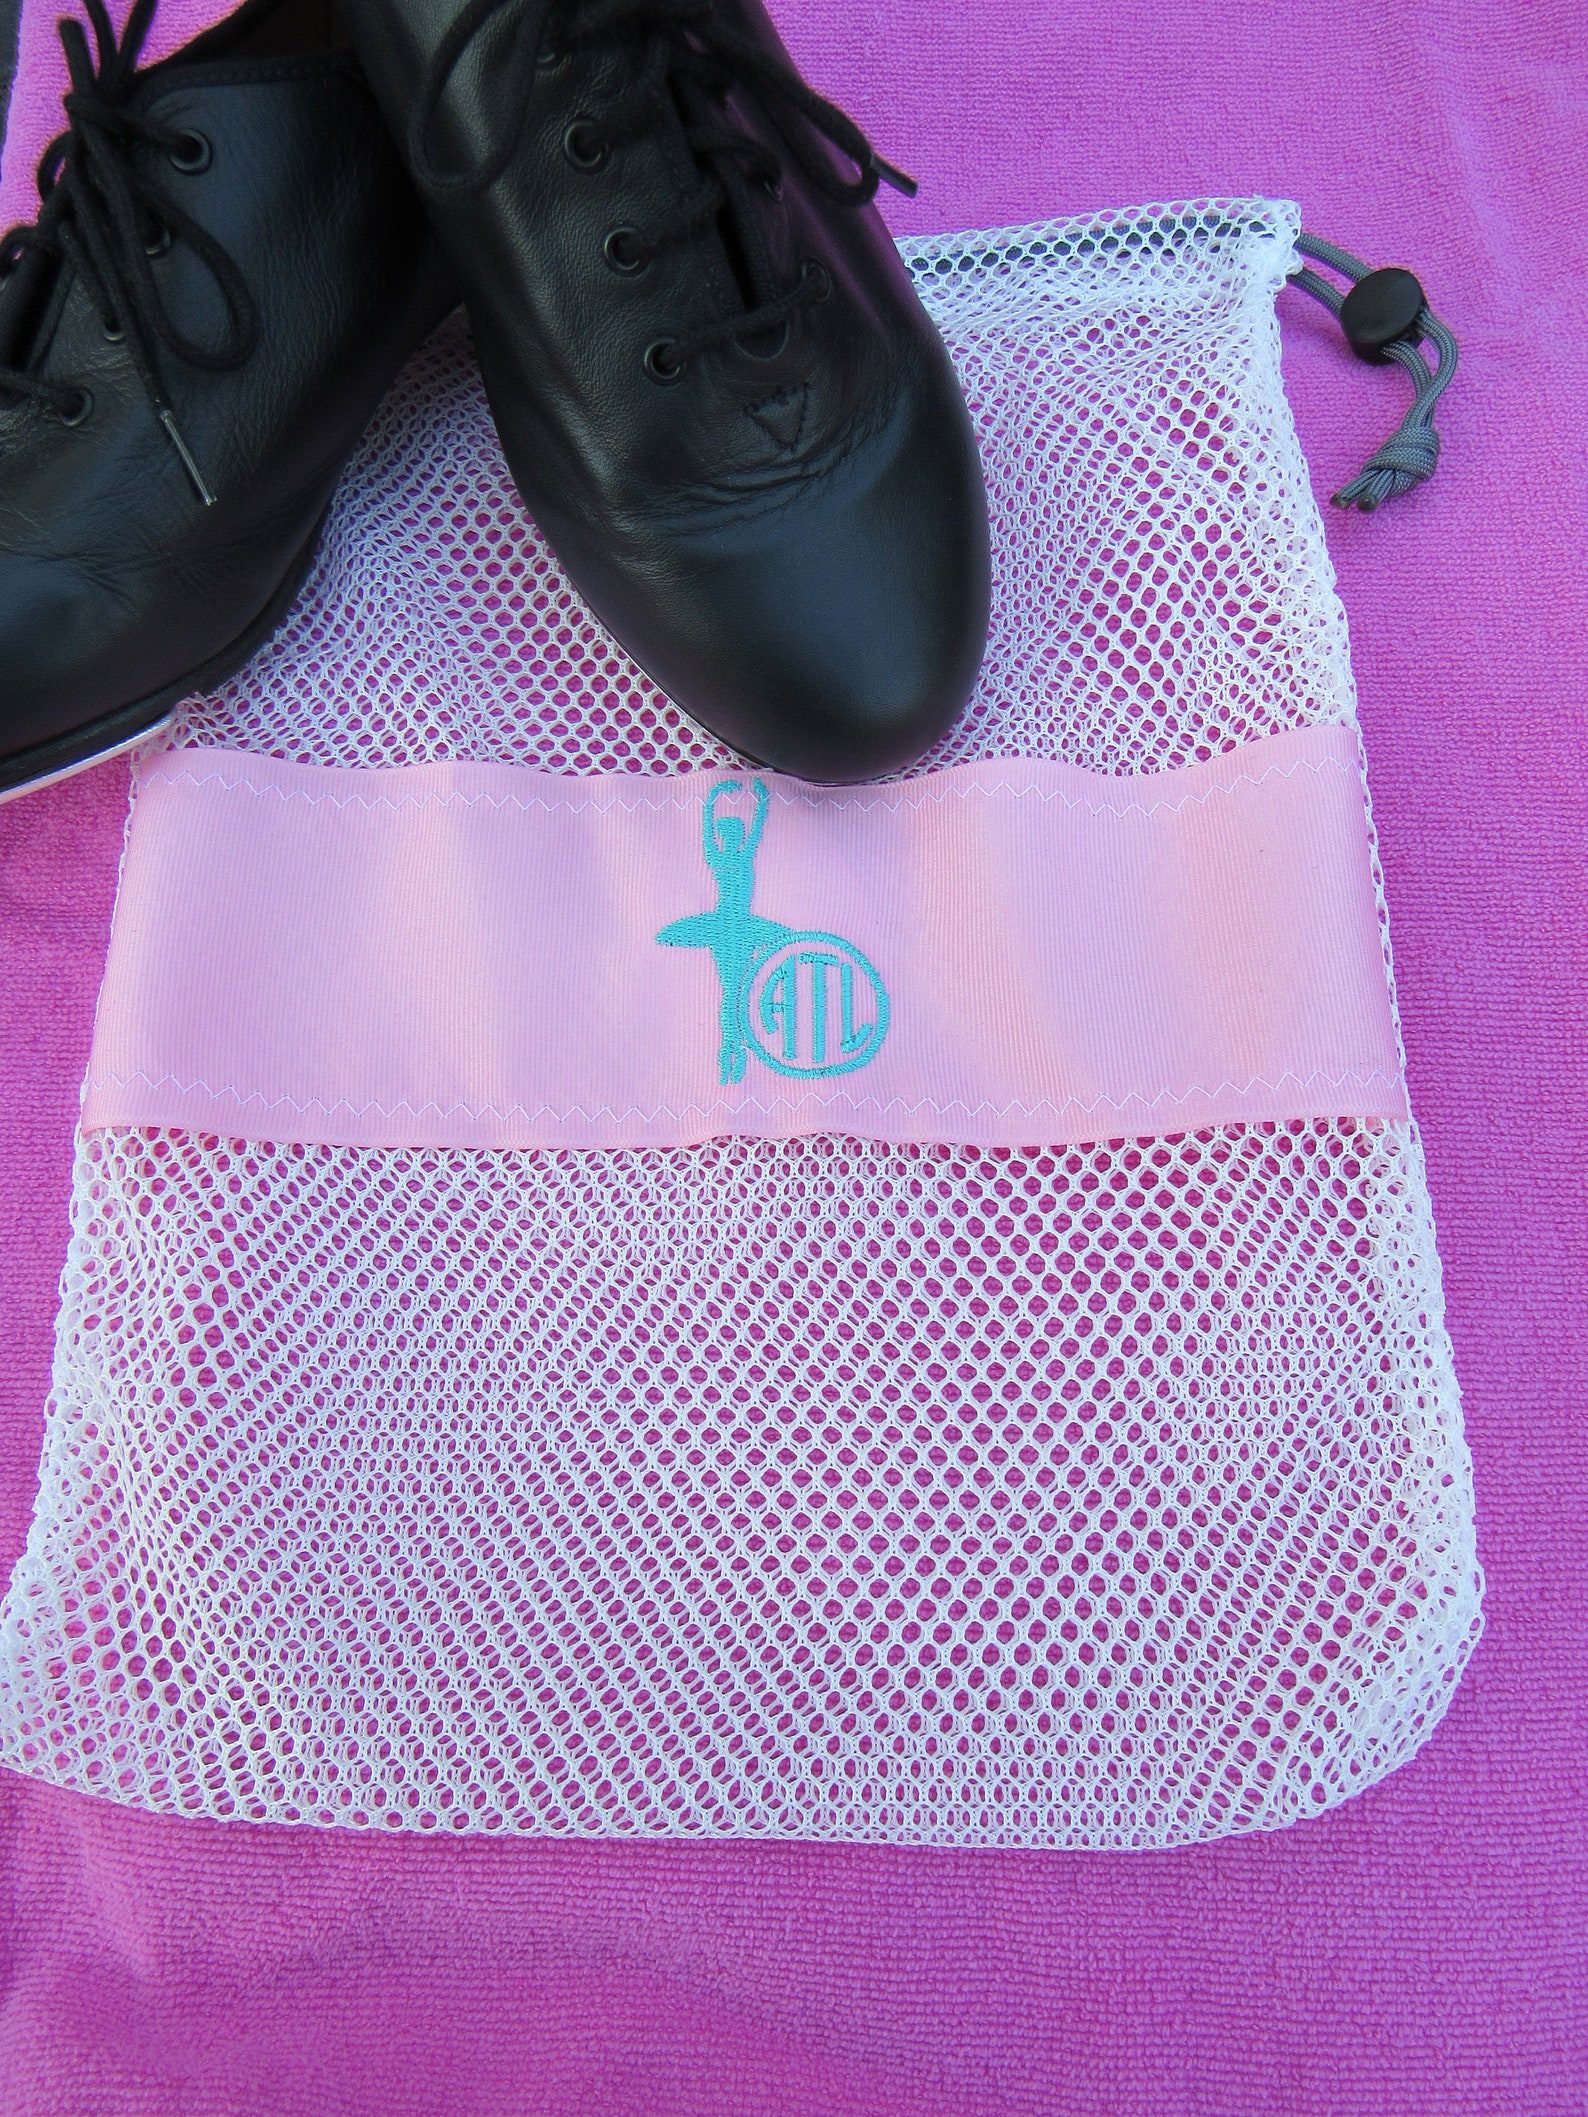 mesh drawstring white small ballet jazz tap pointe shoe glove ditty bag; free shipping within usa; dance team cheer softball gif